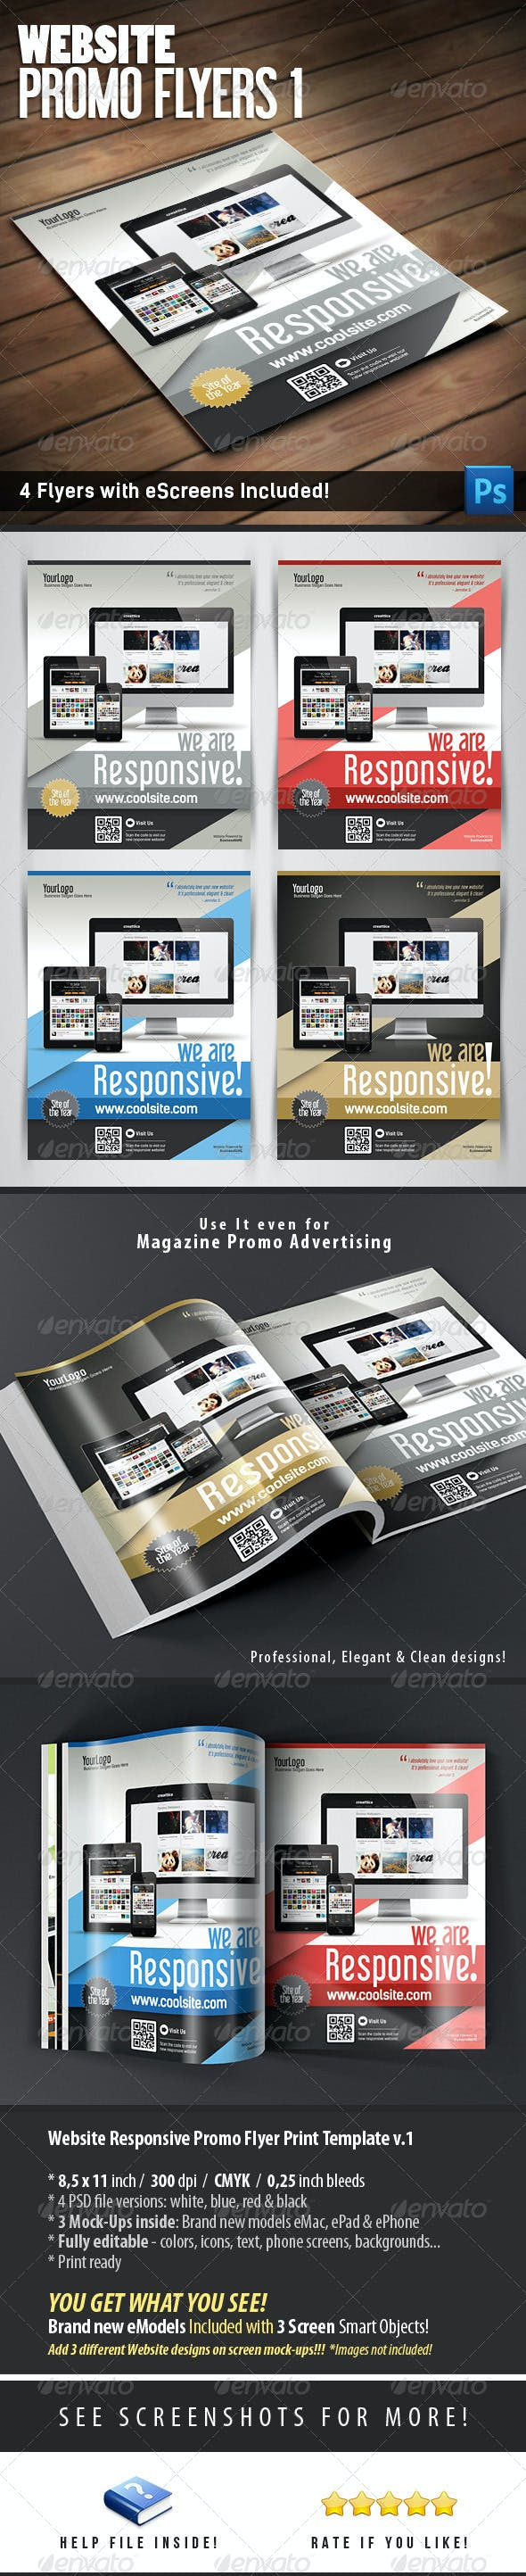 website responsive promo flyers template v 1 by level studio